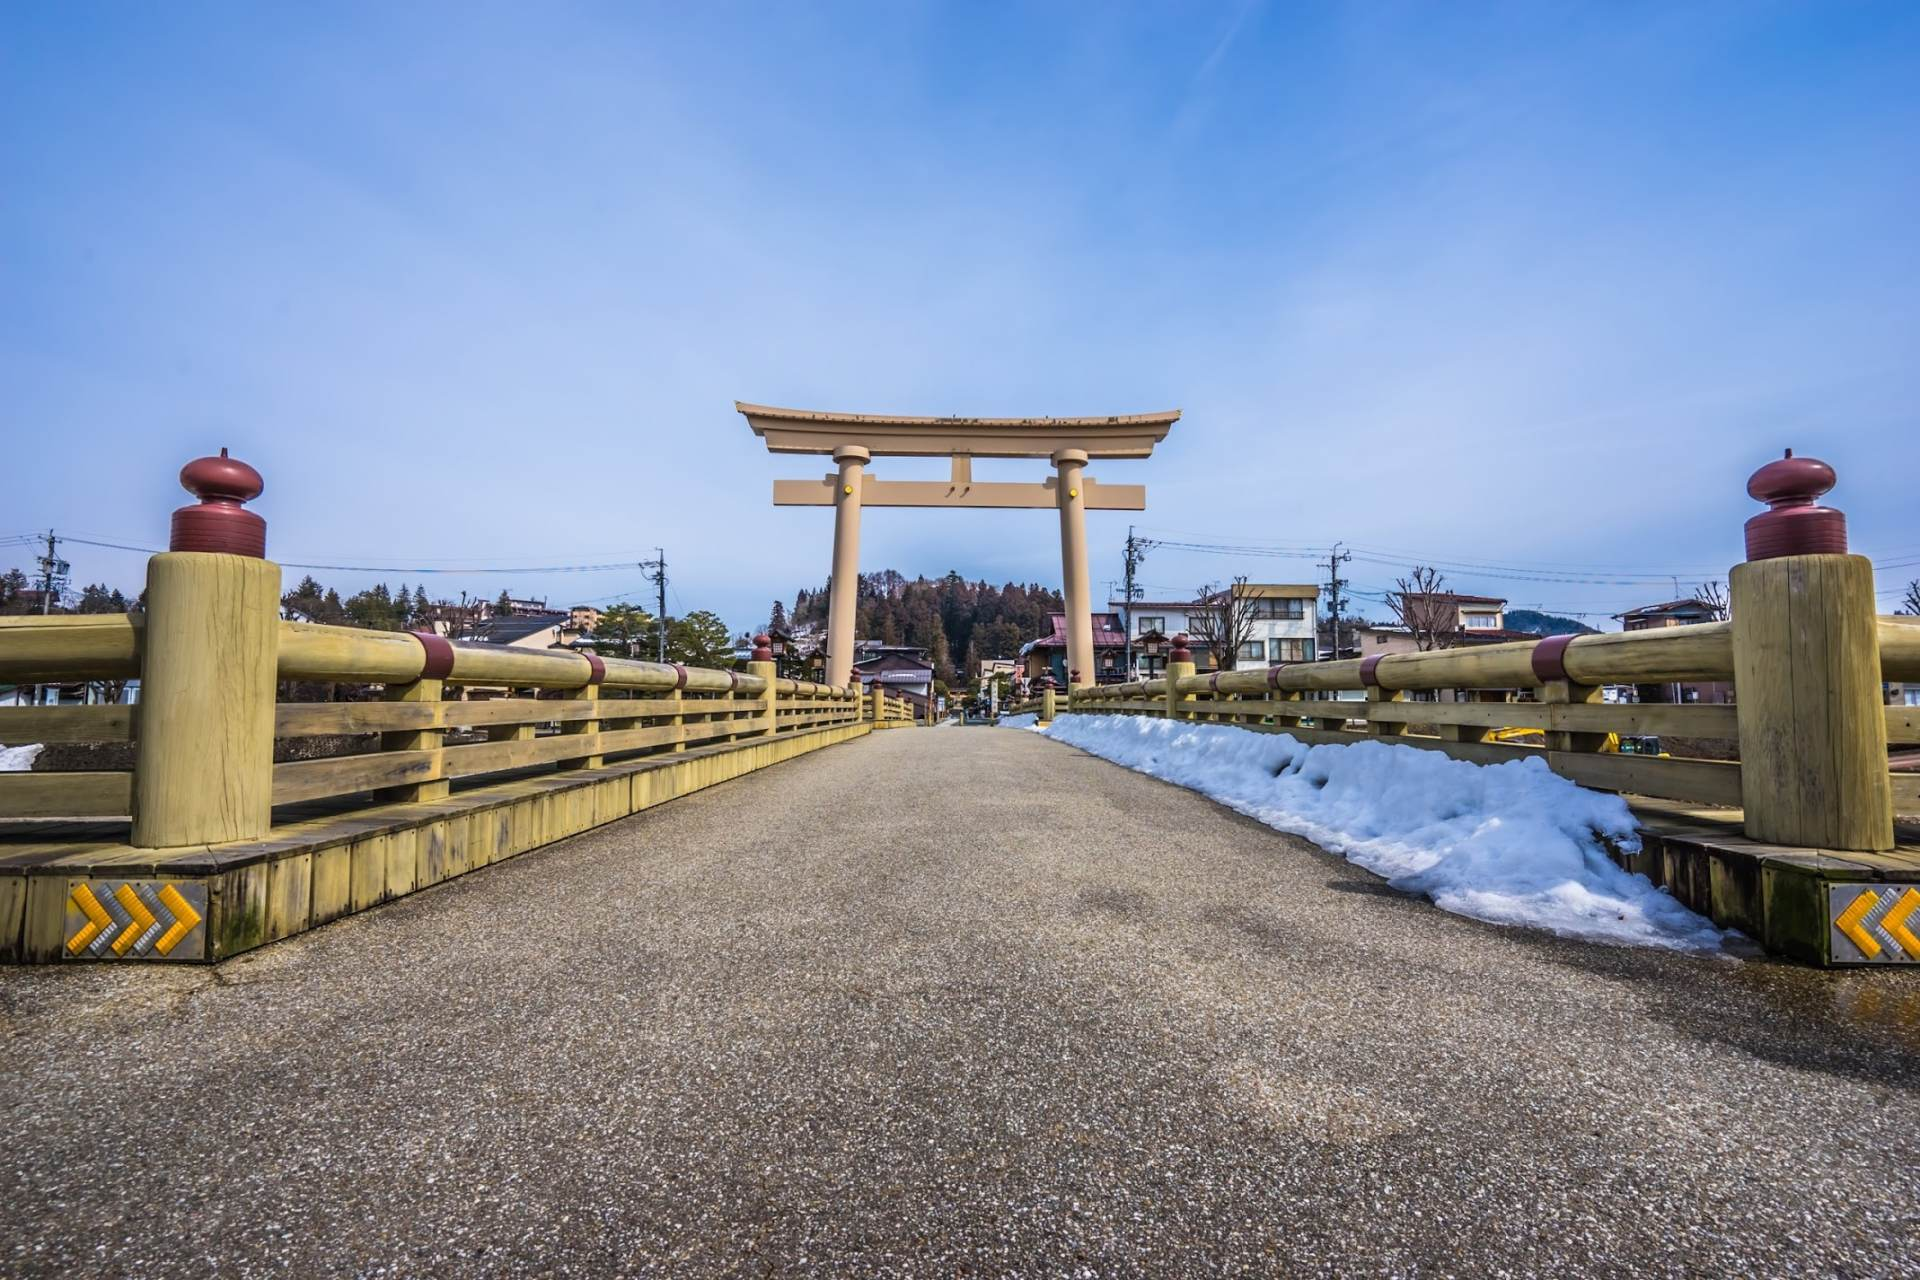 Large Torii Gate Approaching the Shrine